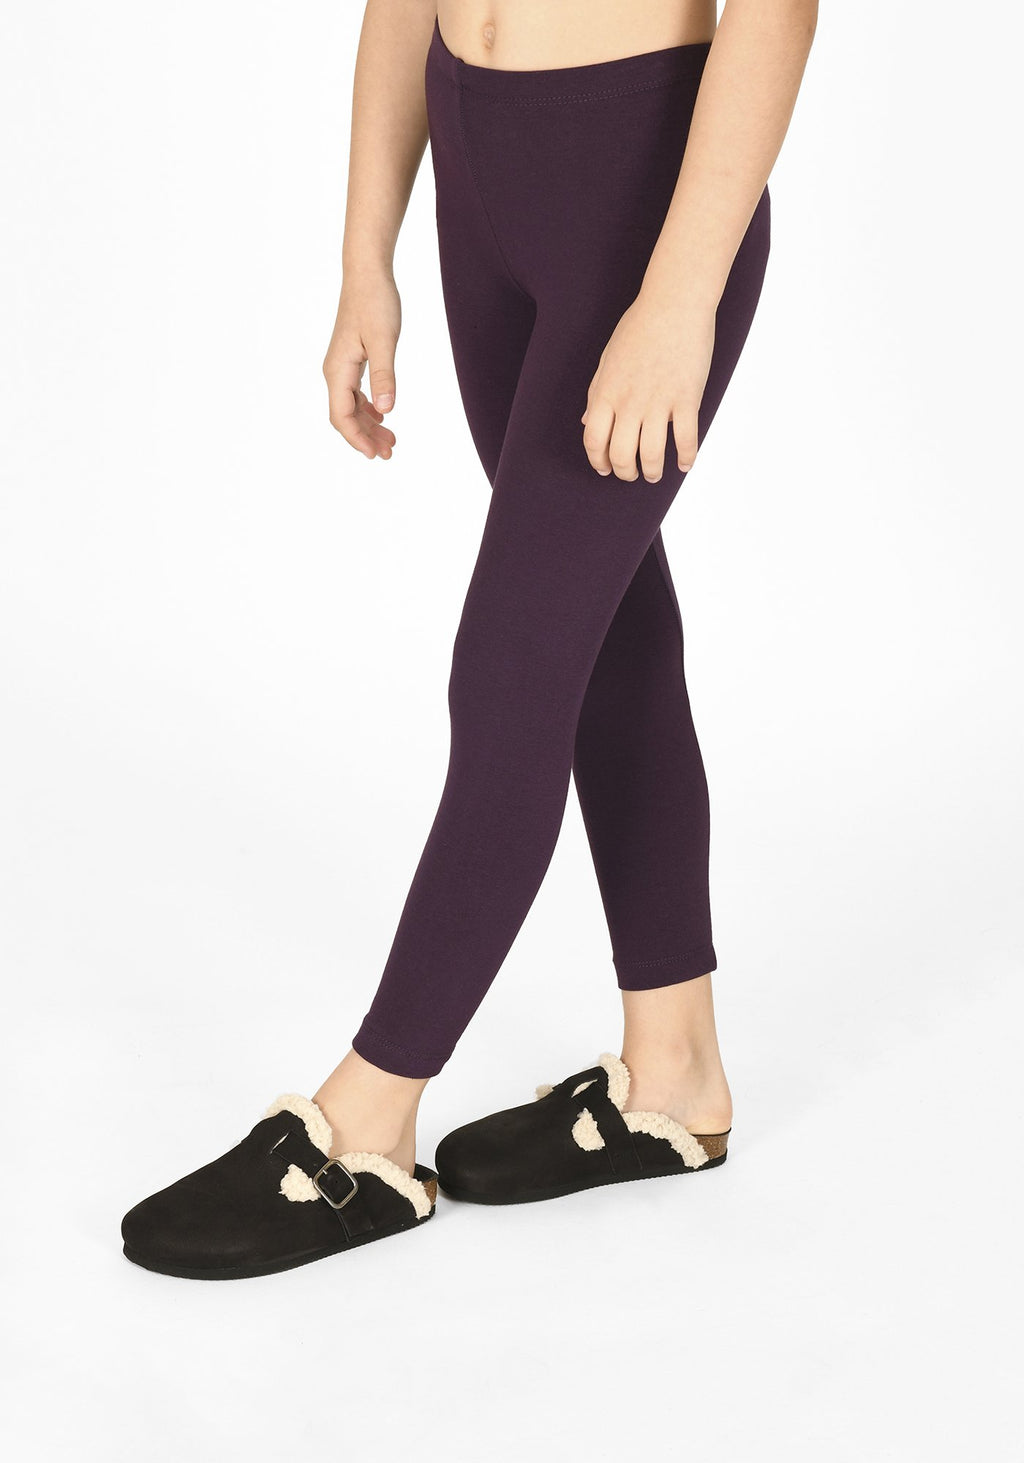 acai purple full length childrens leggings 1